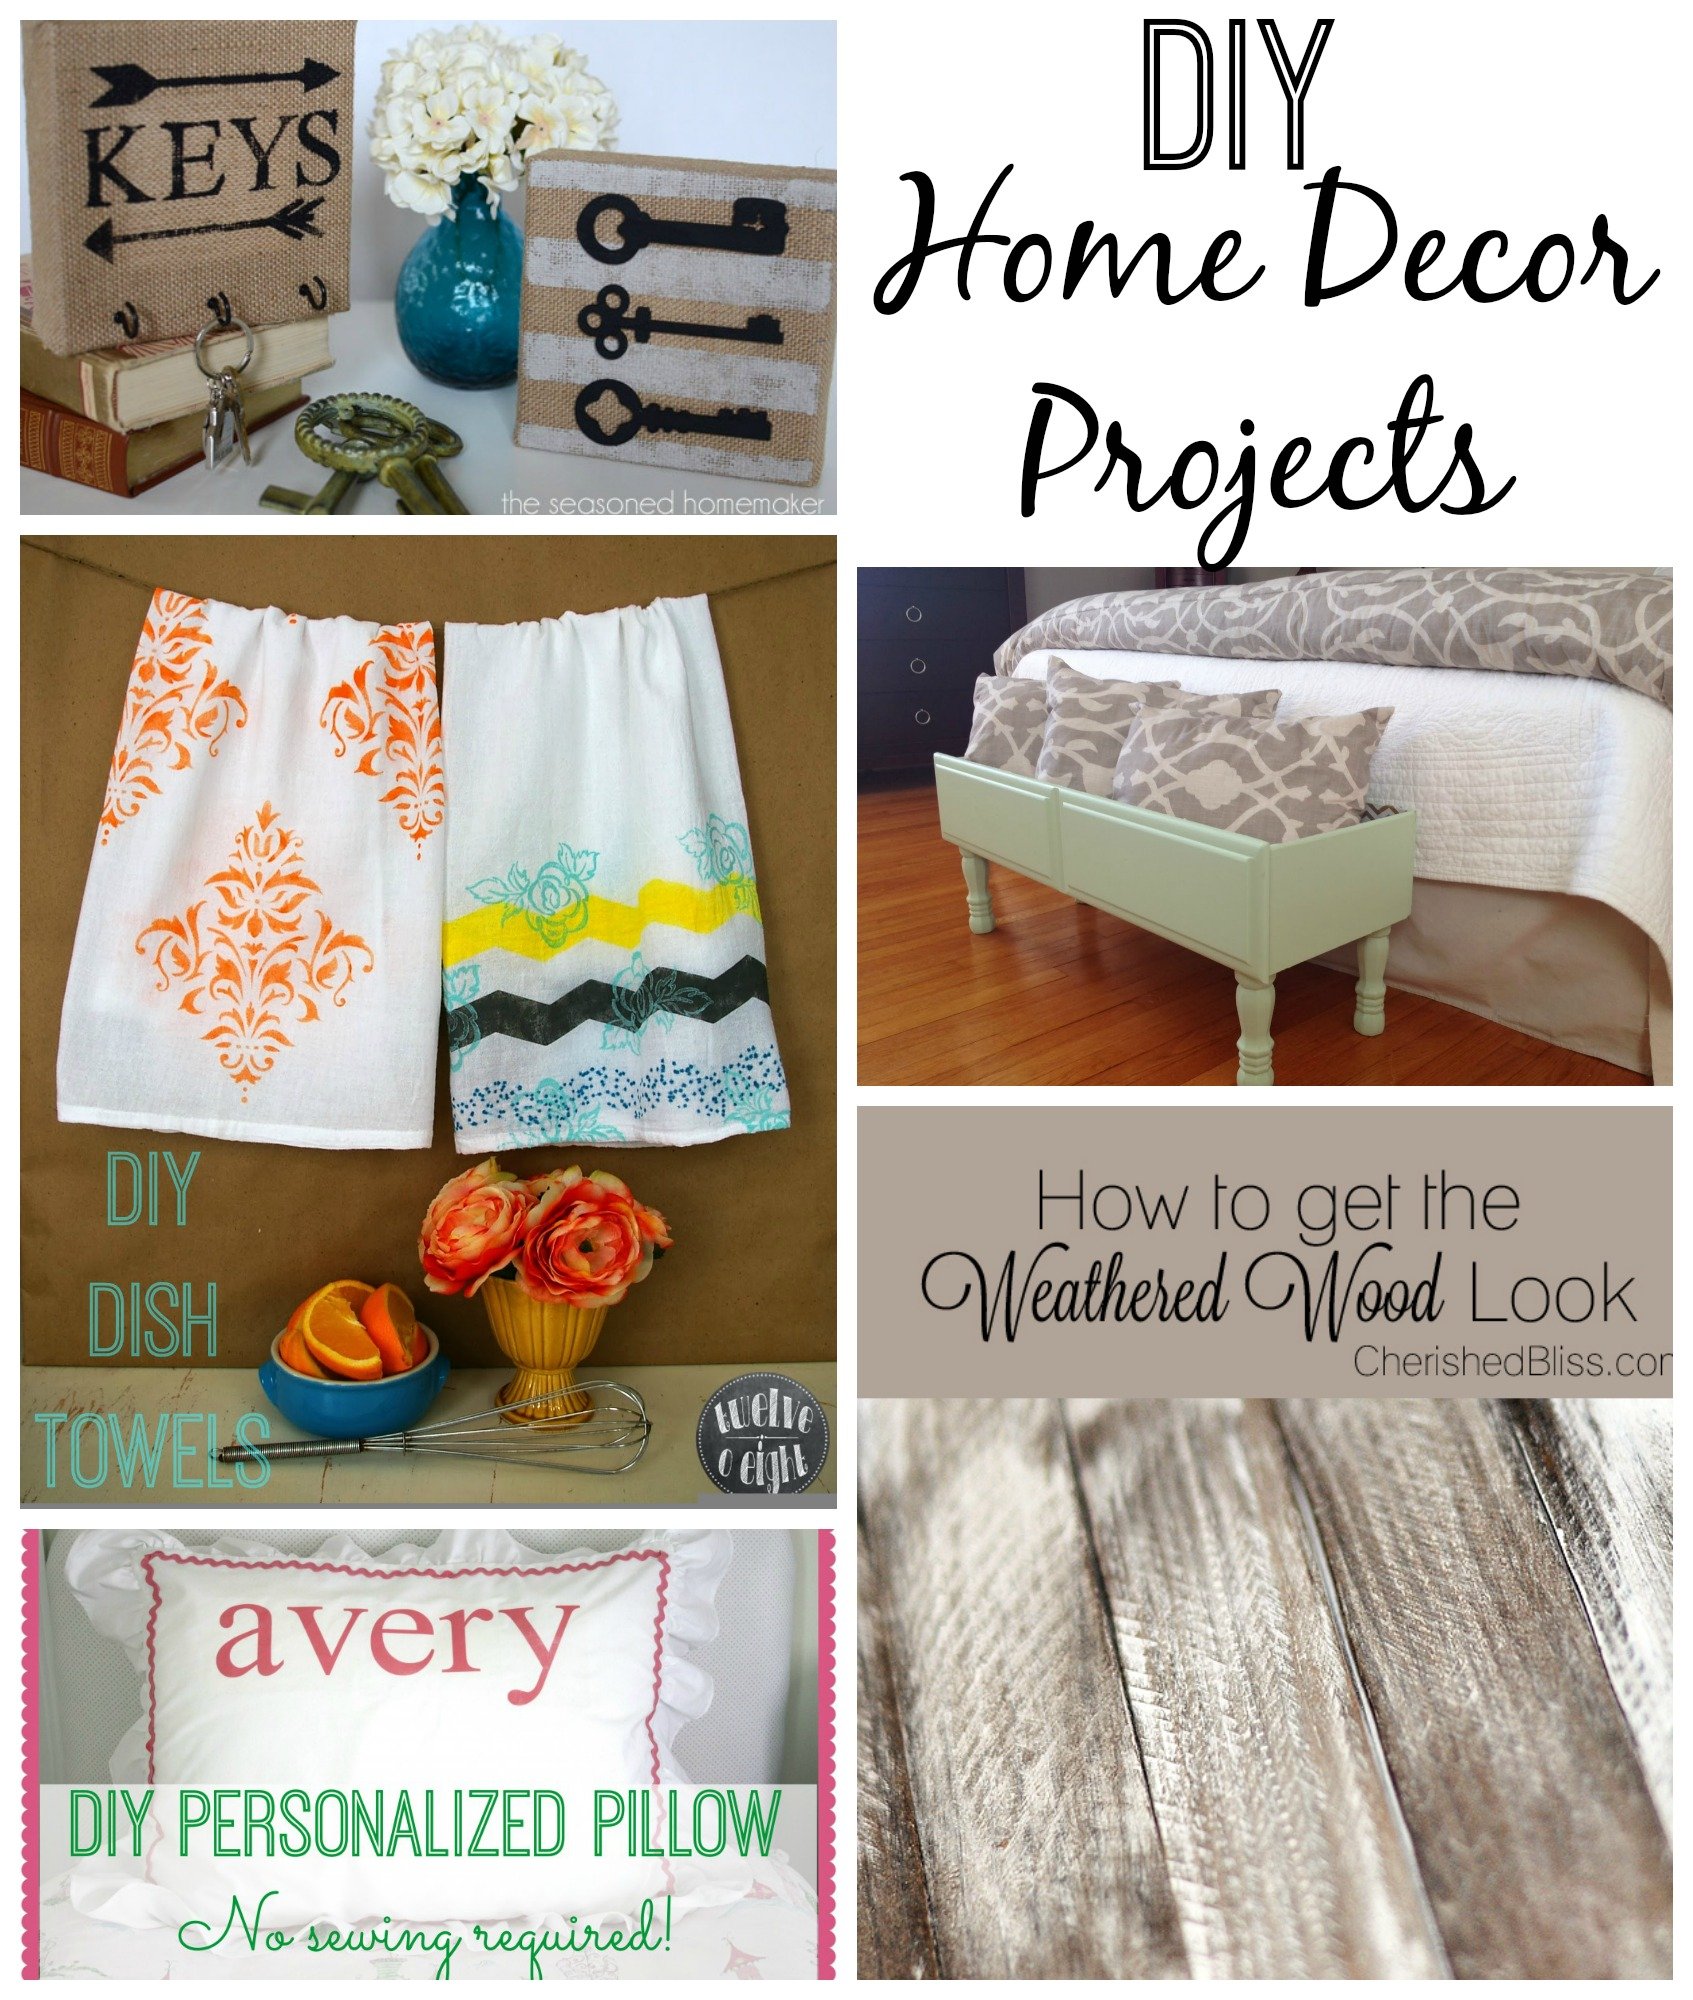 Diy Home Decor Projects: DIY-Home-Decor-Projects.jpg